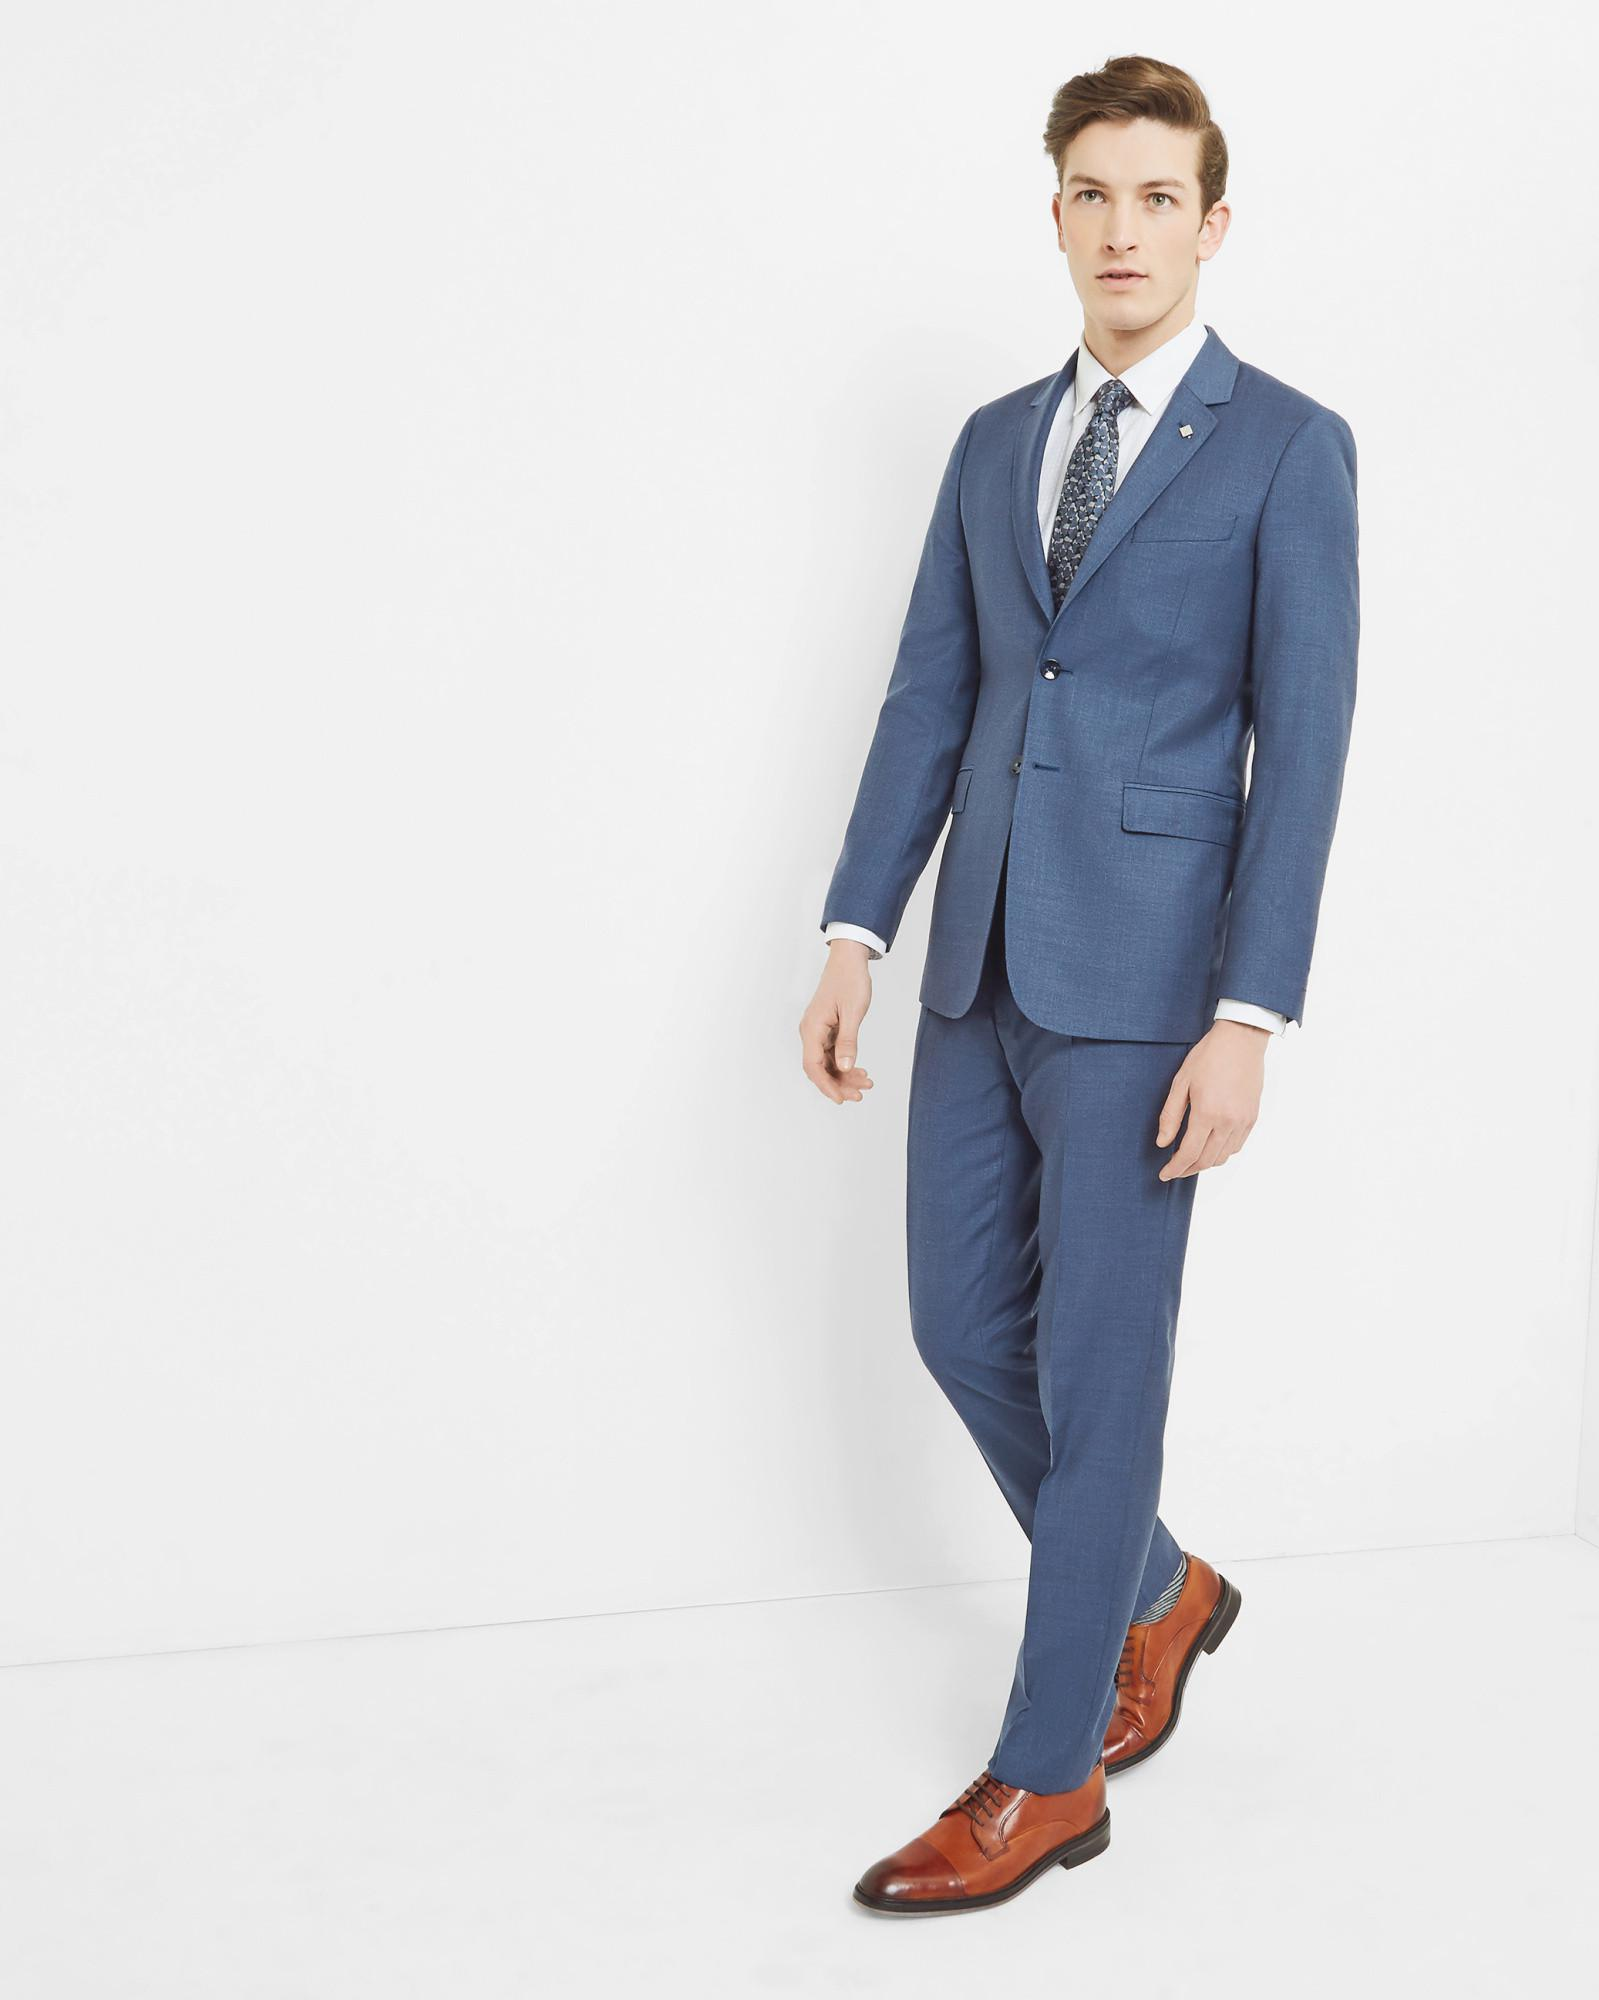 Ted Baker Debonair Textured Wool Trousers in Blue for Men